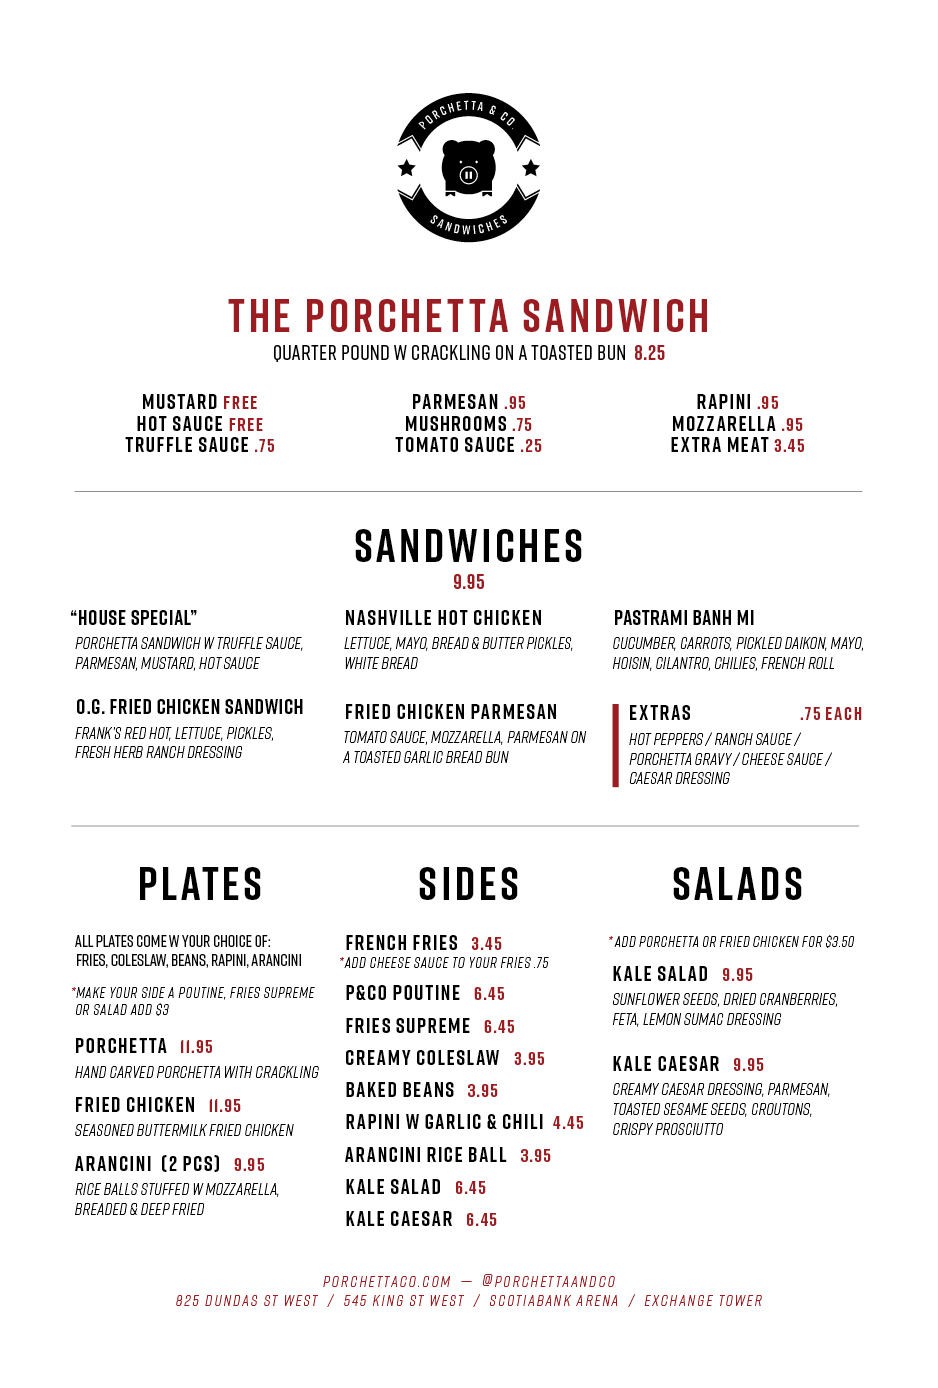 Exchange Tower Sandwich/Sides Menu